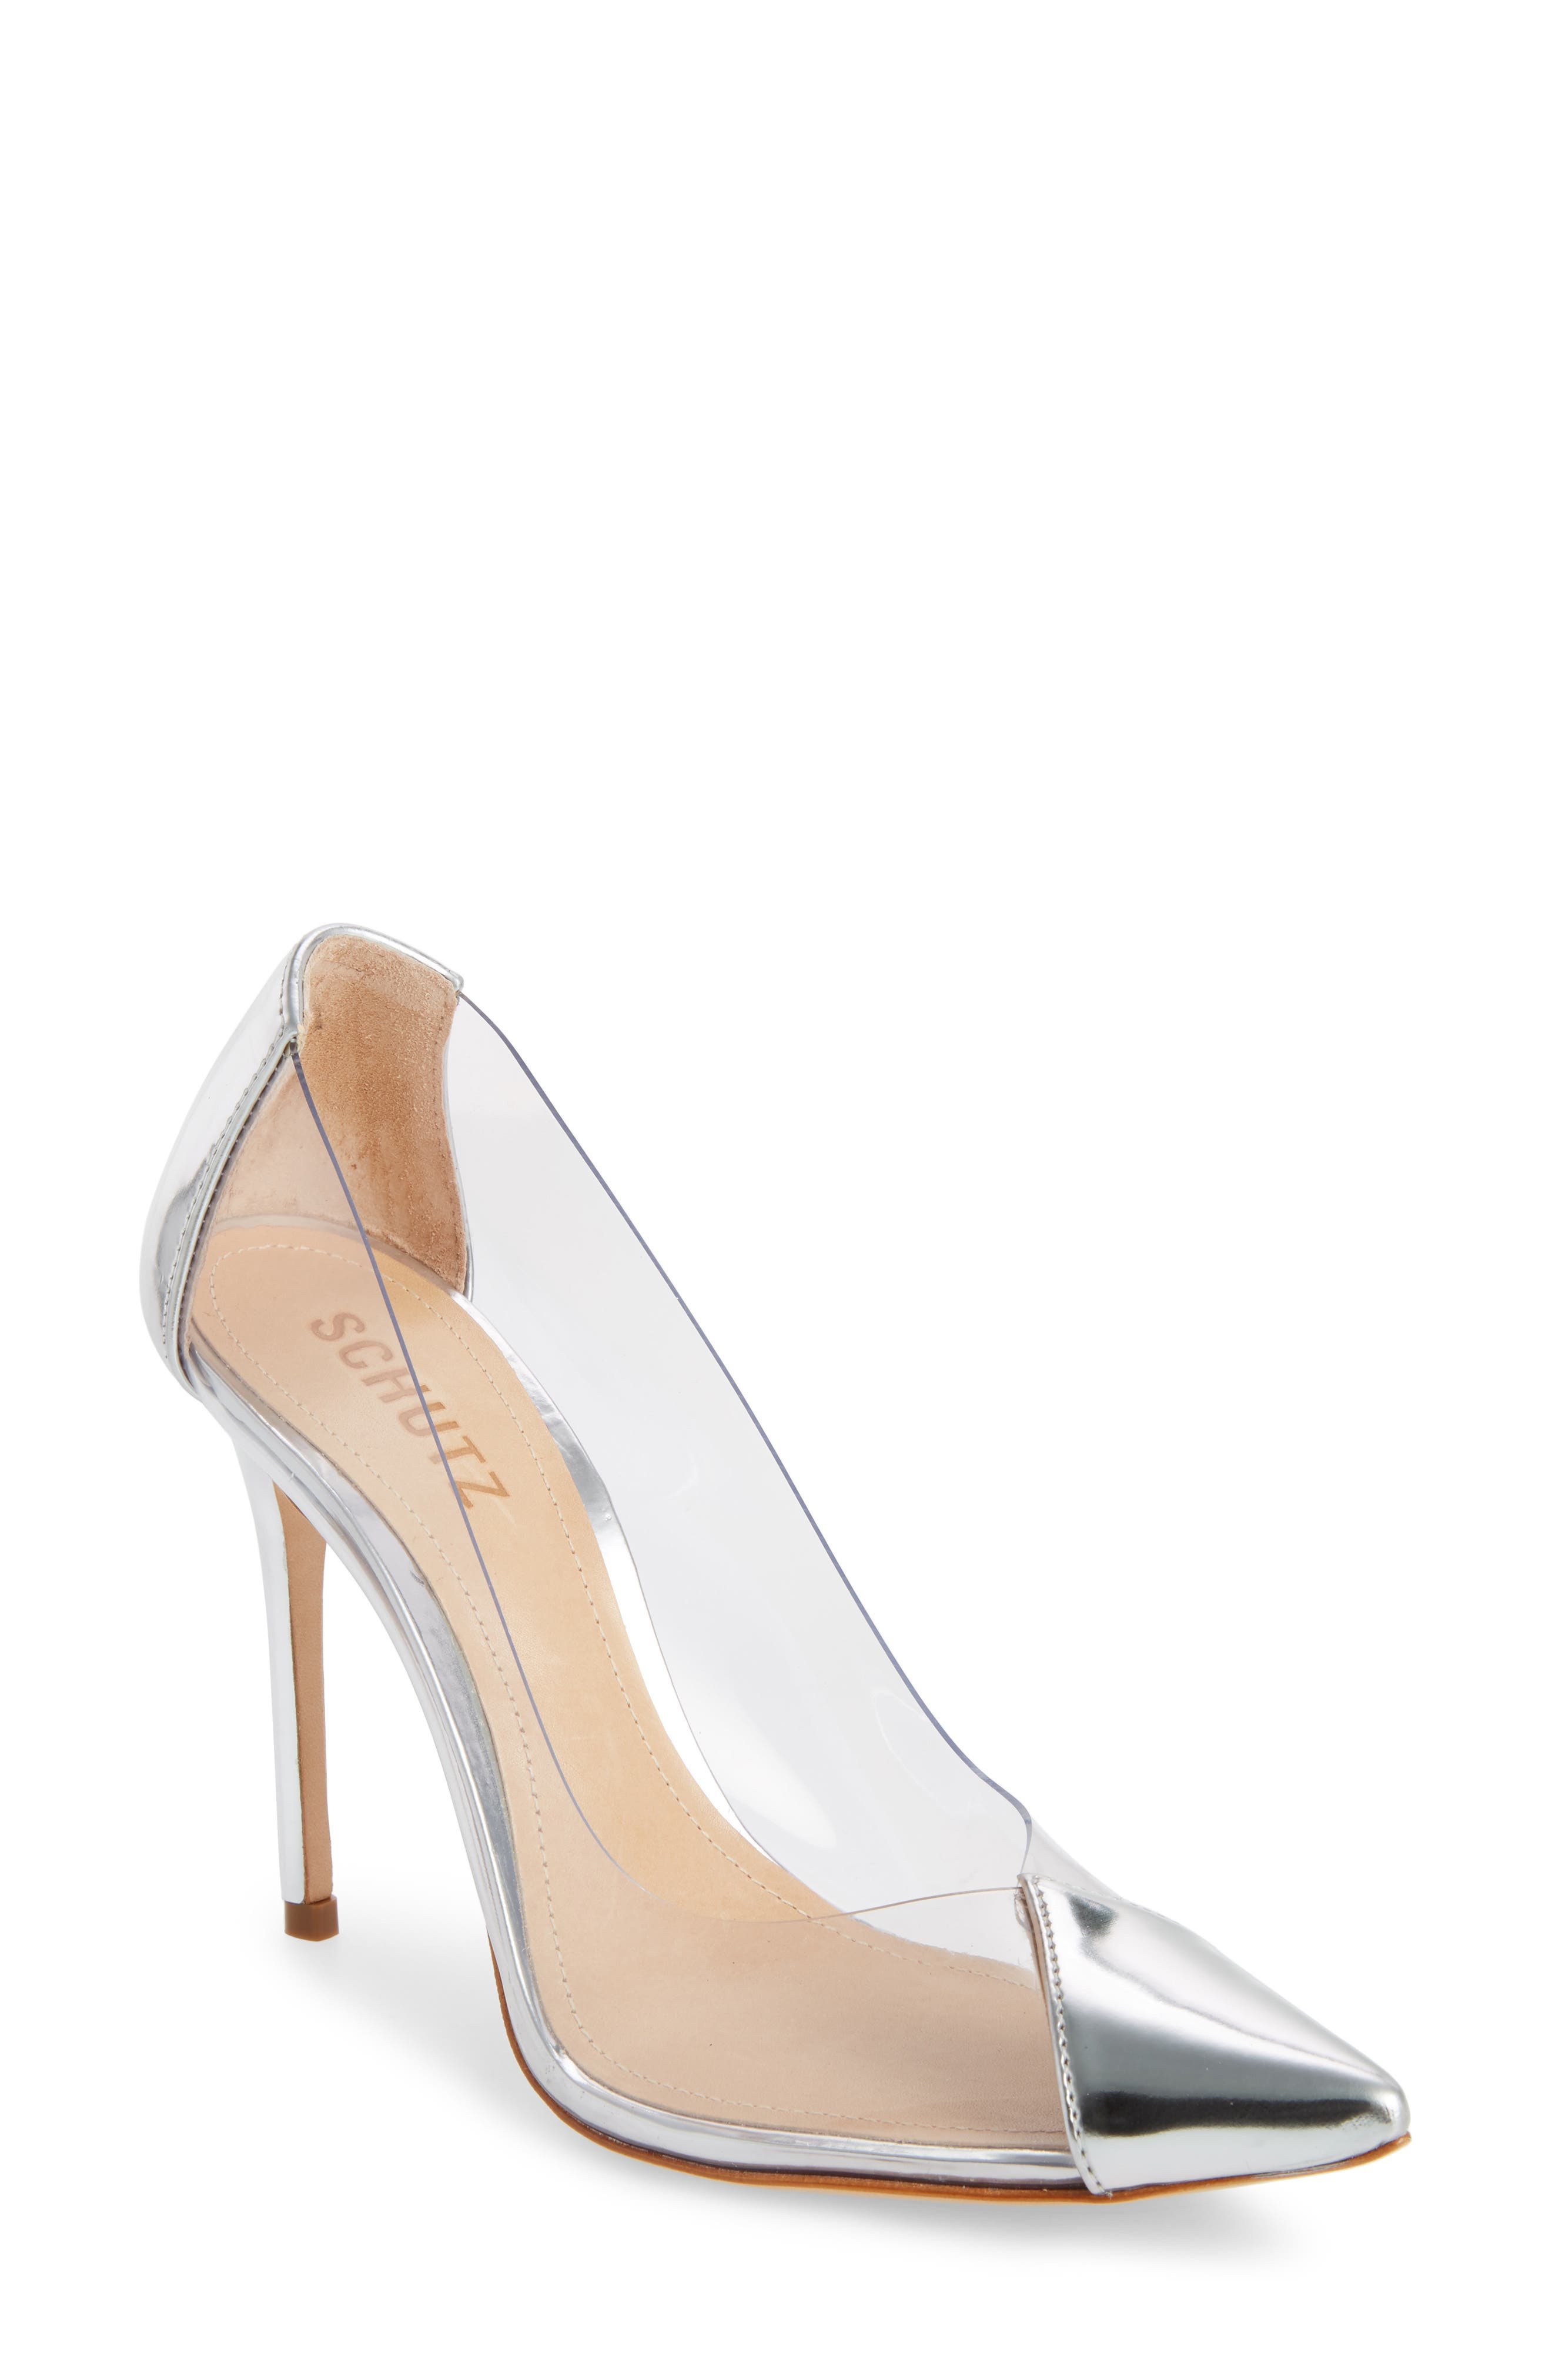 SCHUTZ Women'S Cendi Patent Leather High-Heel Pumps in Silver